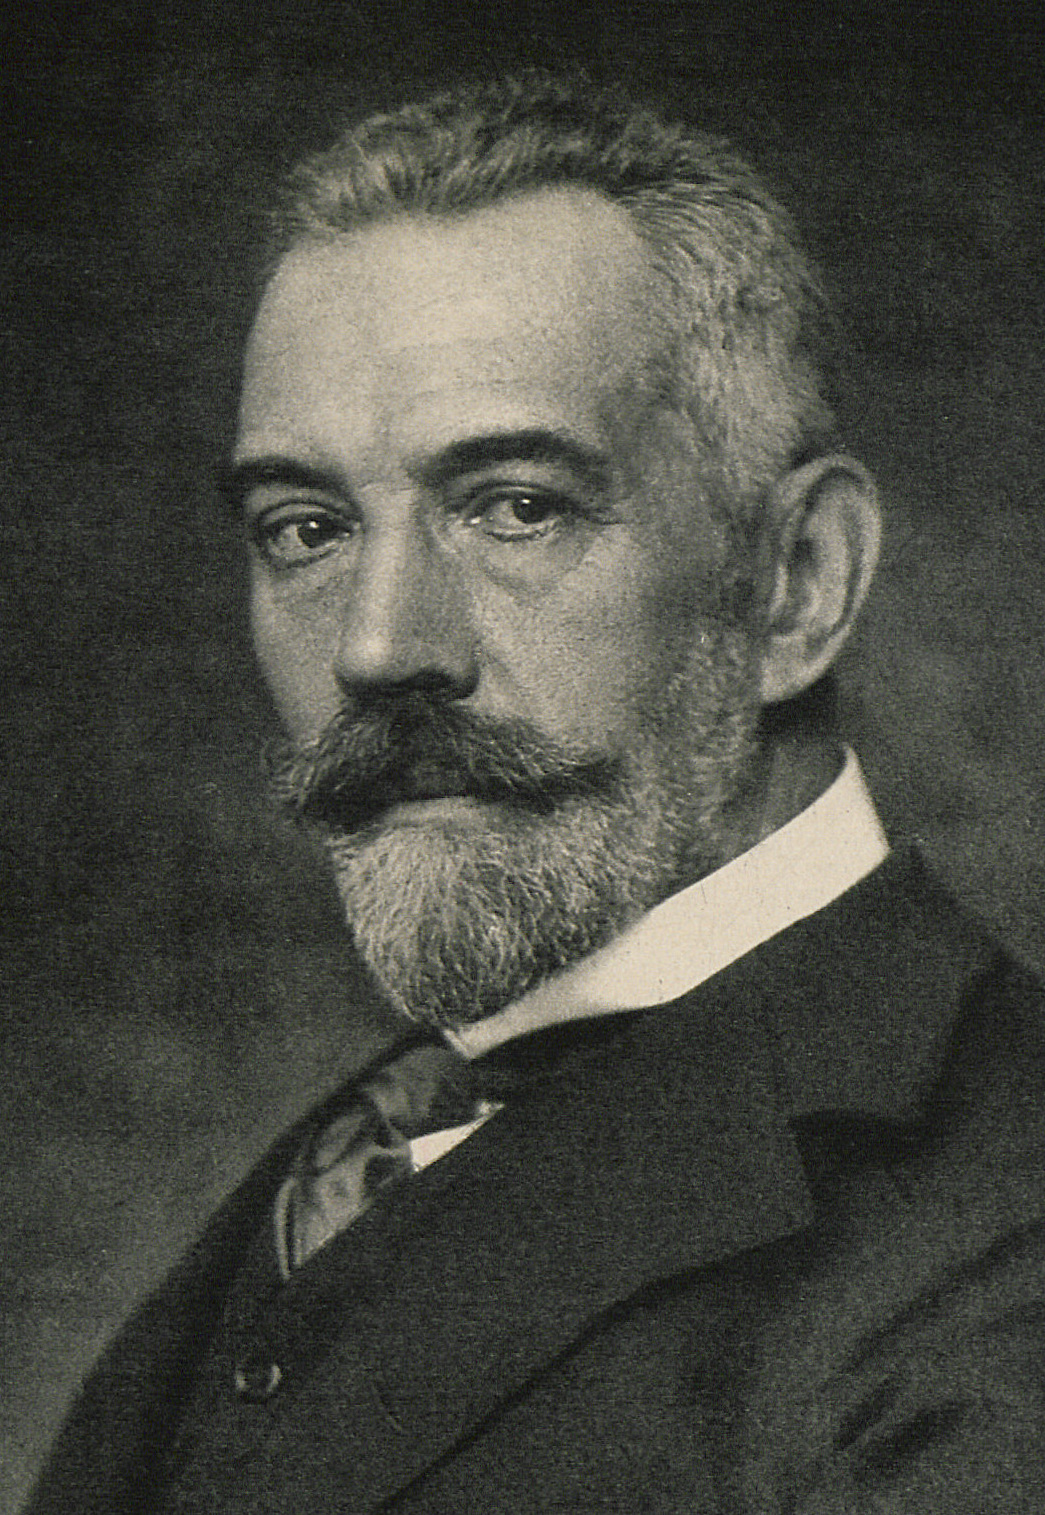 Theobald von Bethmann Hollweg, German politician who served as Chancellor of the German Empire from 1909 to 1917